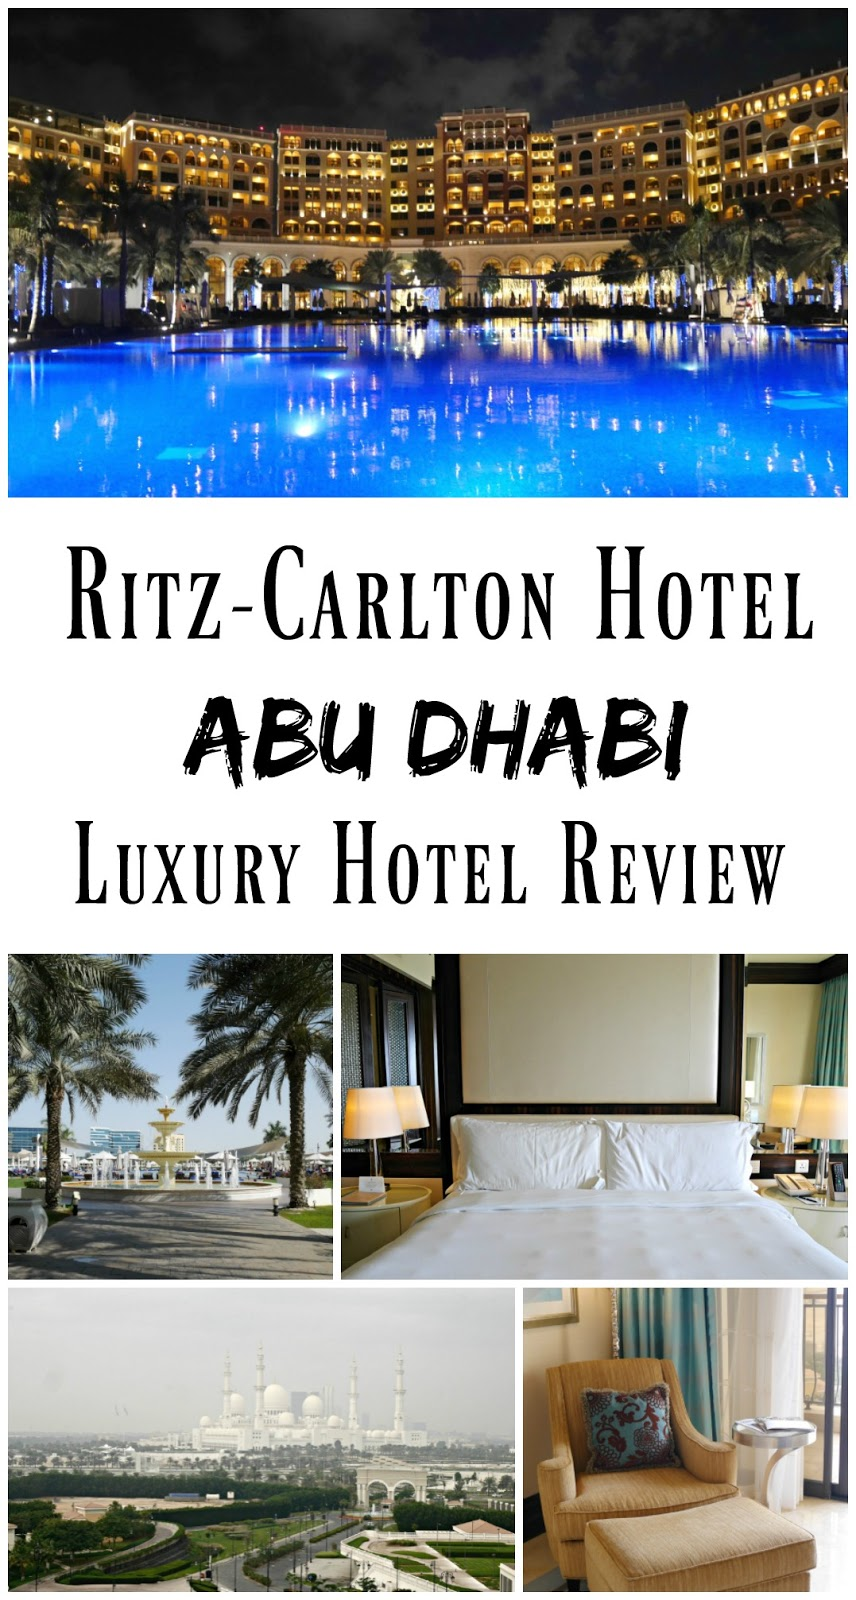 PIN FOR LATER: Ritz-Carlton Abu Dhabi Luxury Hotel Review. A stunning resort just five minutes away from the Sheikh Zayed Mosque. There are plenty of restaurants onsite, and the hotel is ideal for both families and couples!